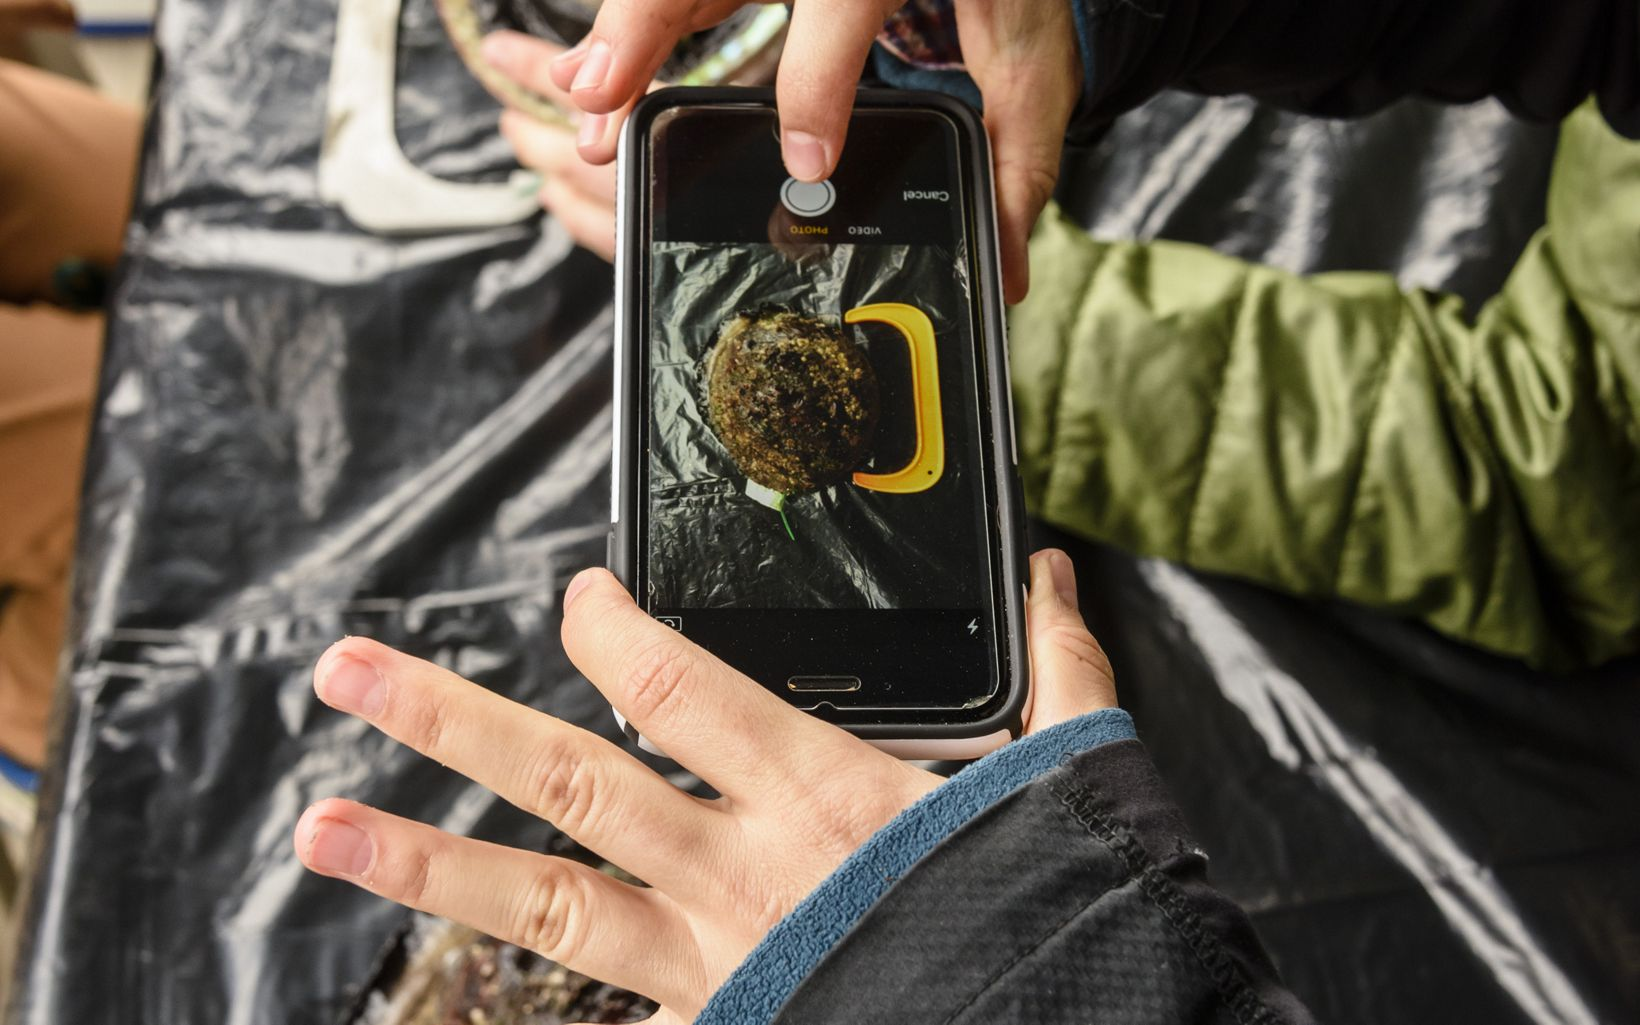 Hands holding a smartphone to photograph something brown and fuzzy that is showing through a hole in a black garbage bag.